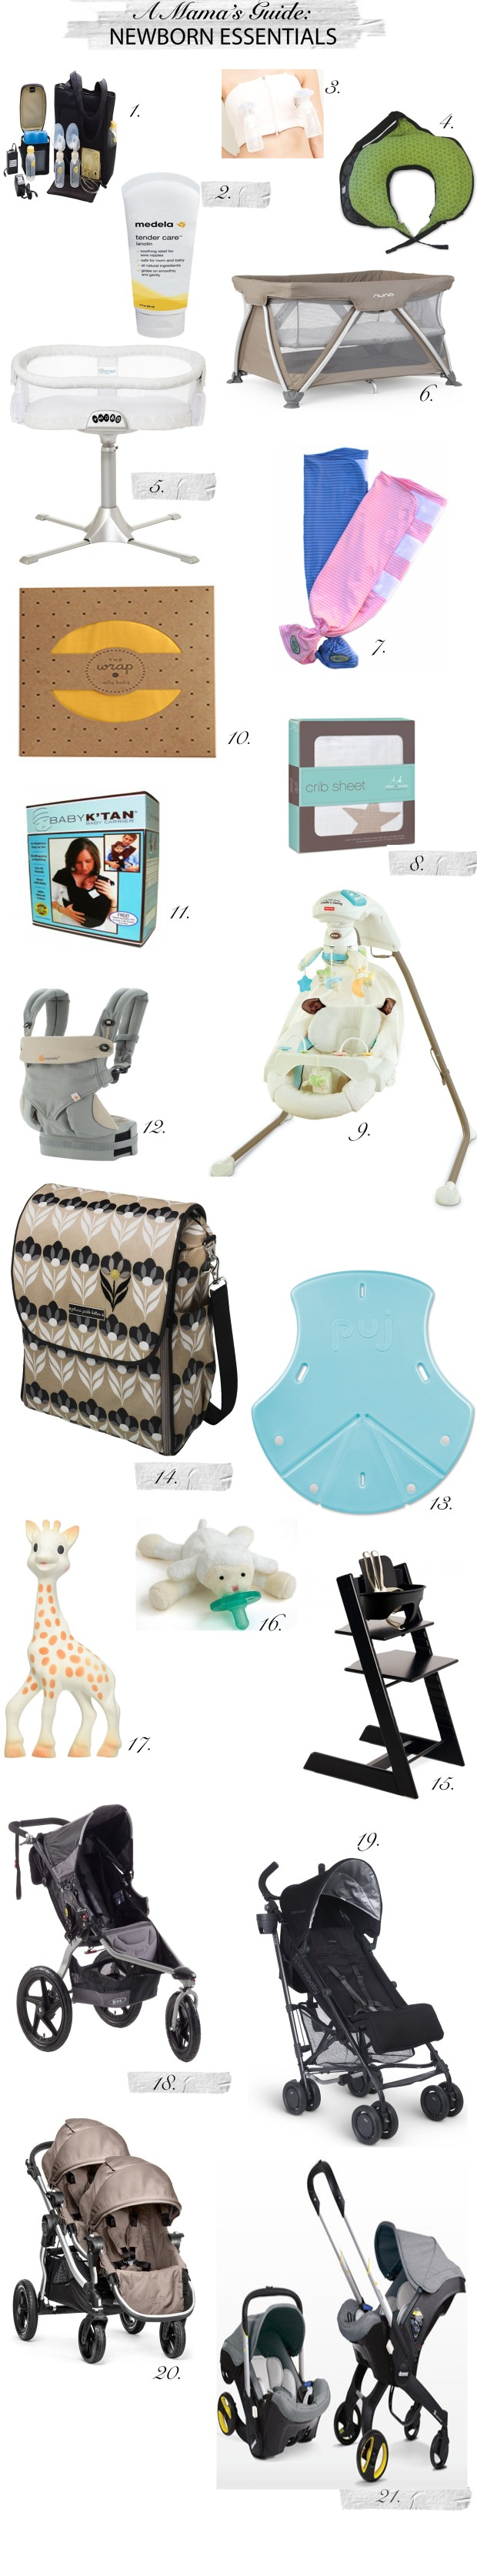 a mama's guide to newborn essentials